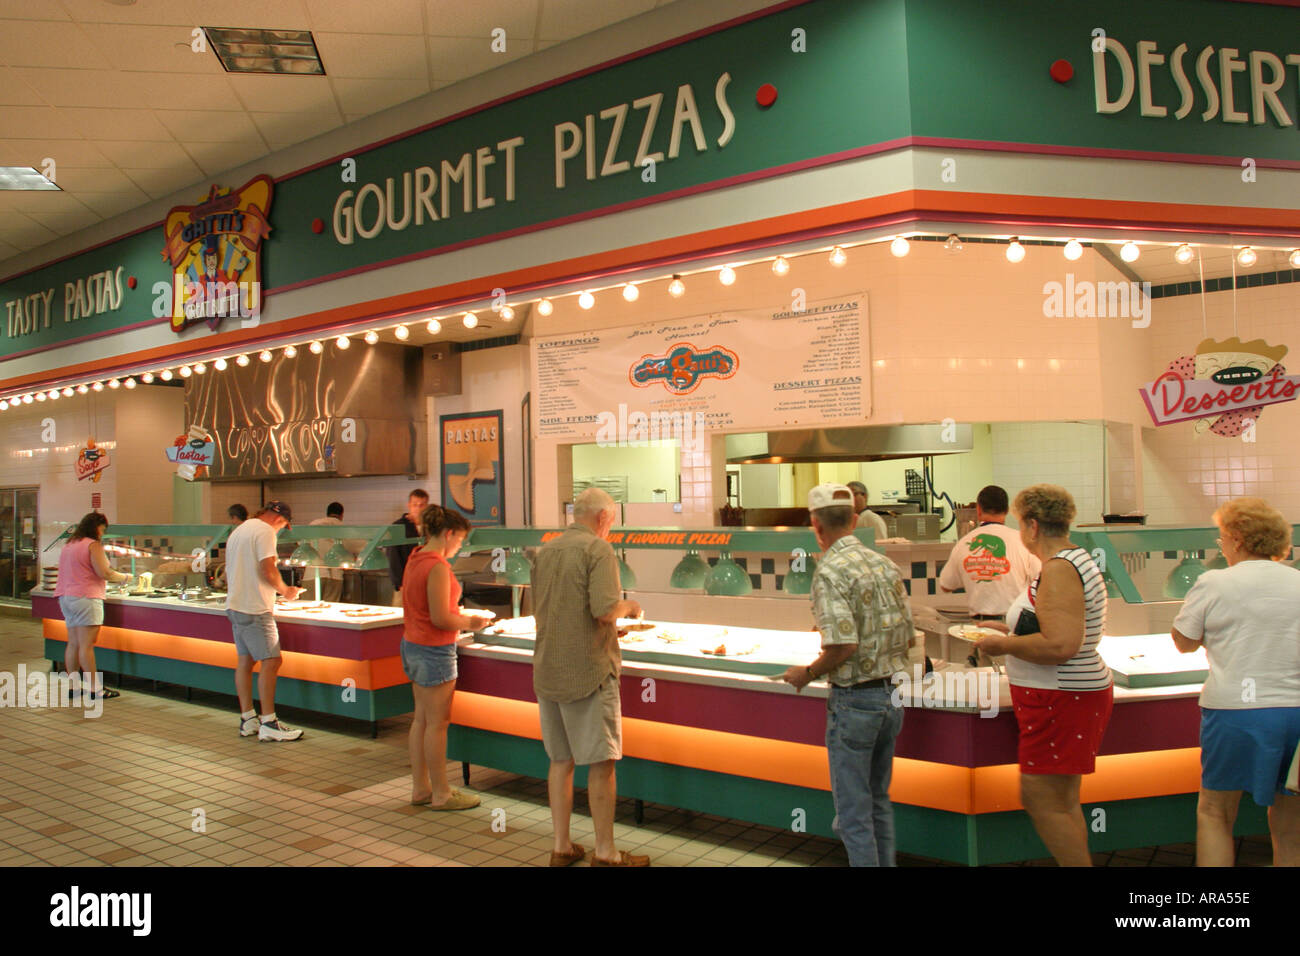 Phenomenal Tennessee Sevierville Mr Gattis Buffet Pizza And Games Download Free Architecture Designs Intelgarnamadebymaigaardcom